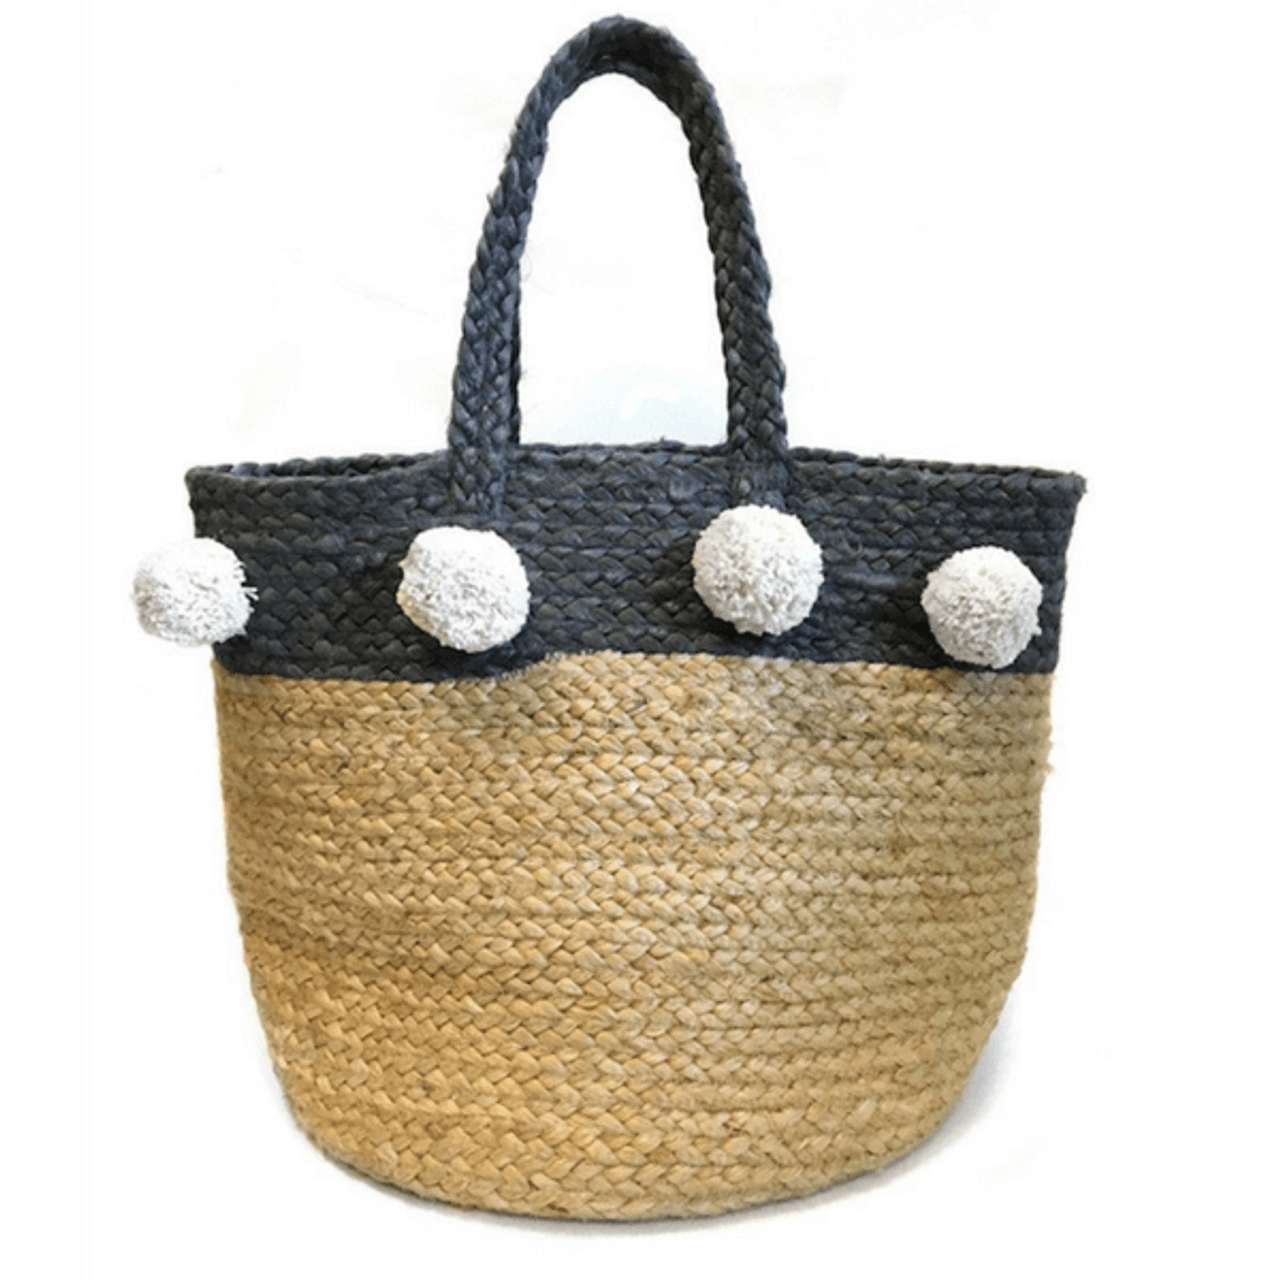 jute basket with black trim and white pompoms